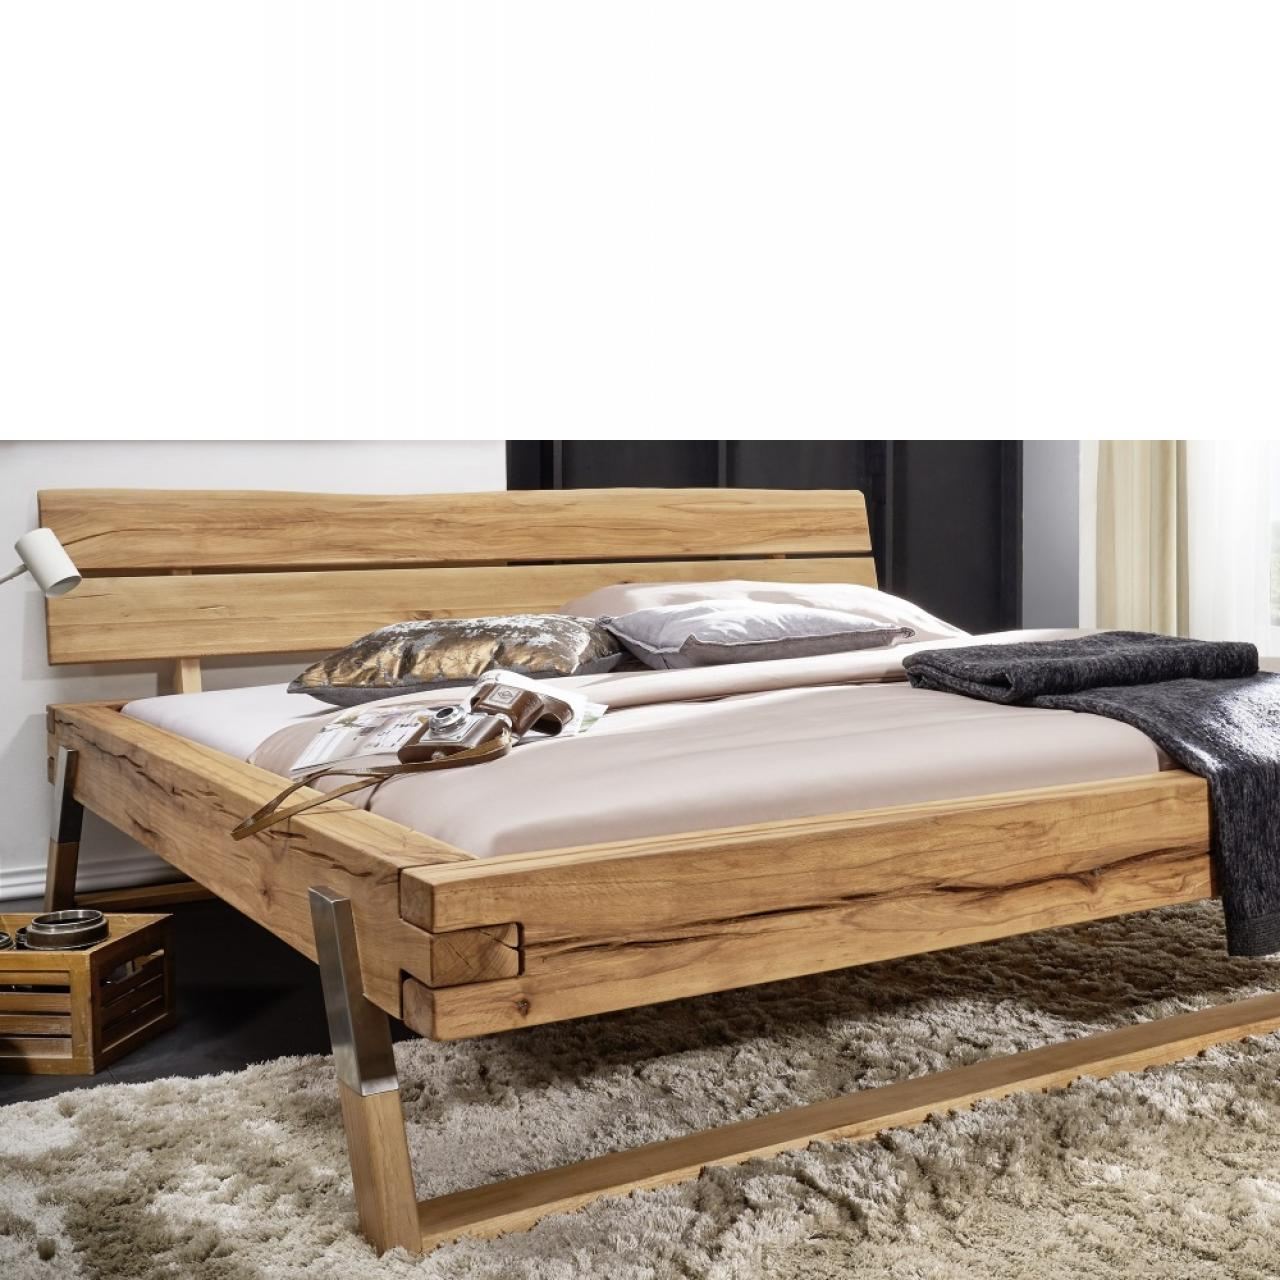 bett wildbuche ge lt massivholz 180x200 cm m bel. Black Bedroom Furniture Sets. Home Design Ideas